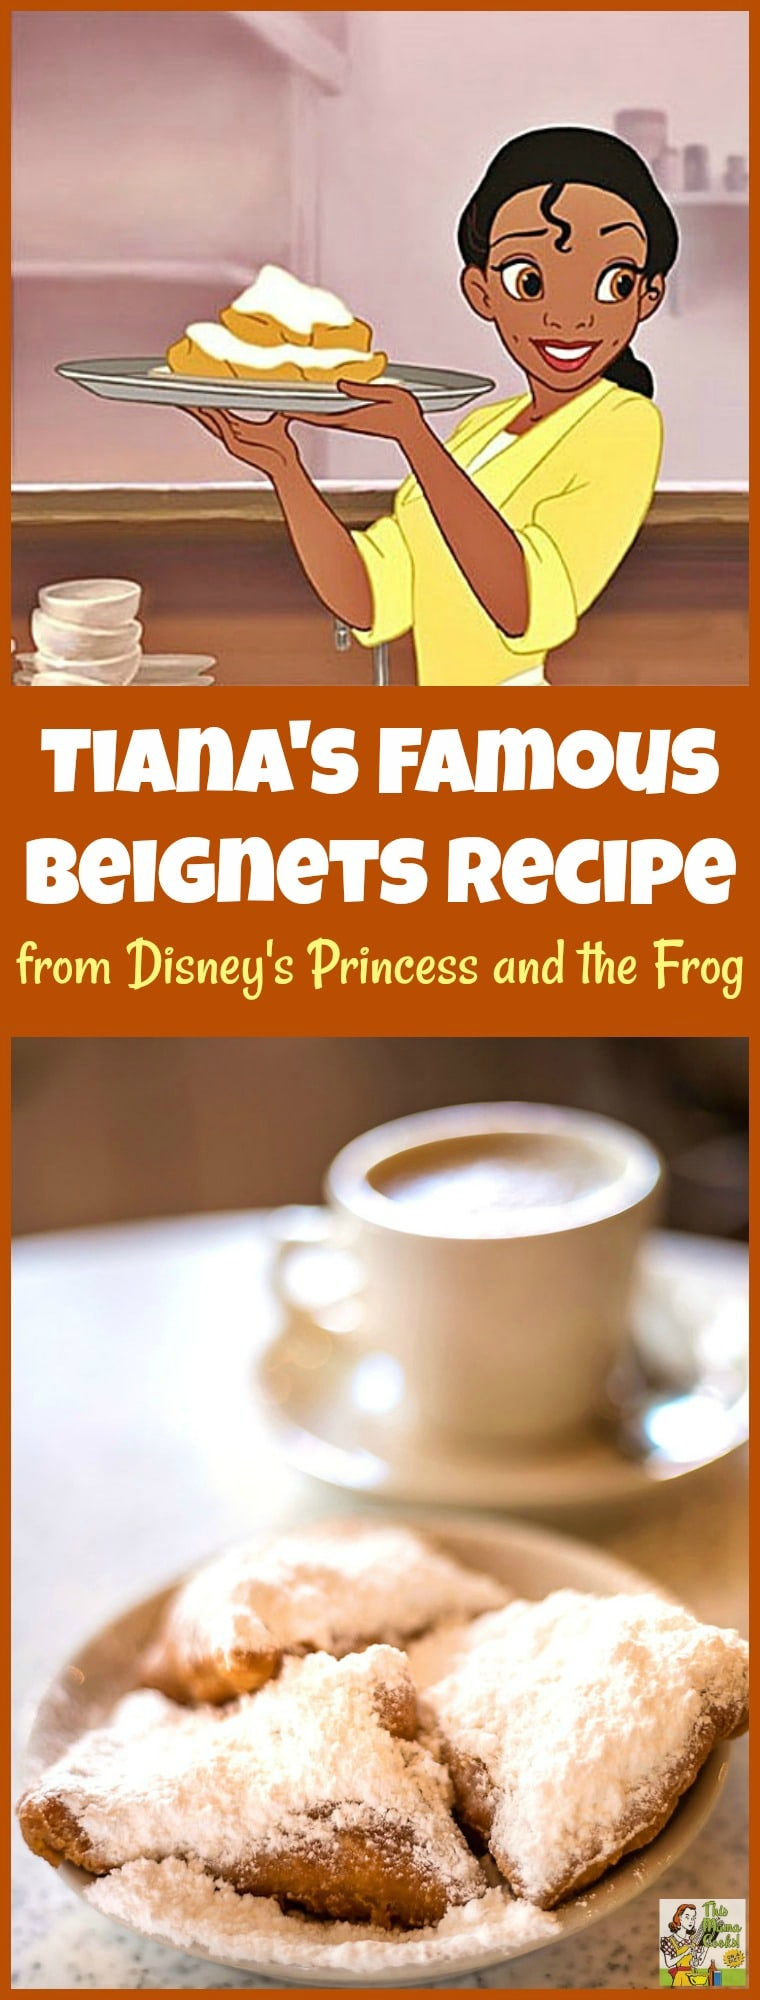 Are you looking for a beignet recipe like they make in New Orleans? Try Tiana's Famous Beignets recipe from the Princess and the Frog movie and cookbook! #disneyprincess #disney #neworleans  #beignets #pastries #cookingwithkids #mardigras #mardigrasparty #baking #bakingrecipes #easybaking #breakfast #brunch #desserts #dessertrecipes #dessertideas